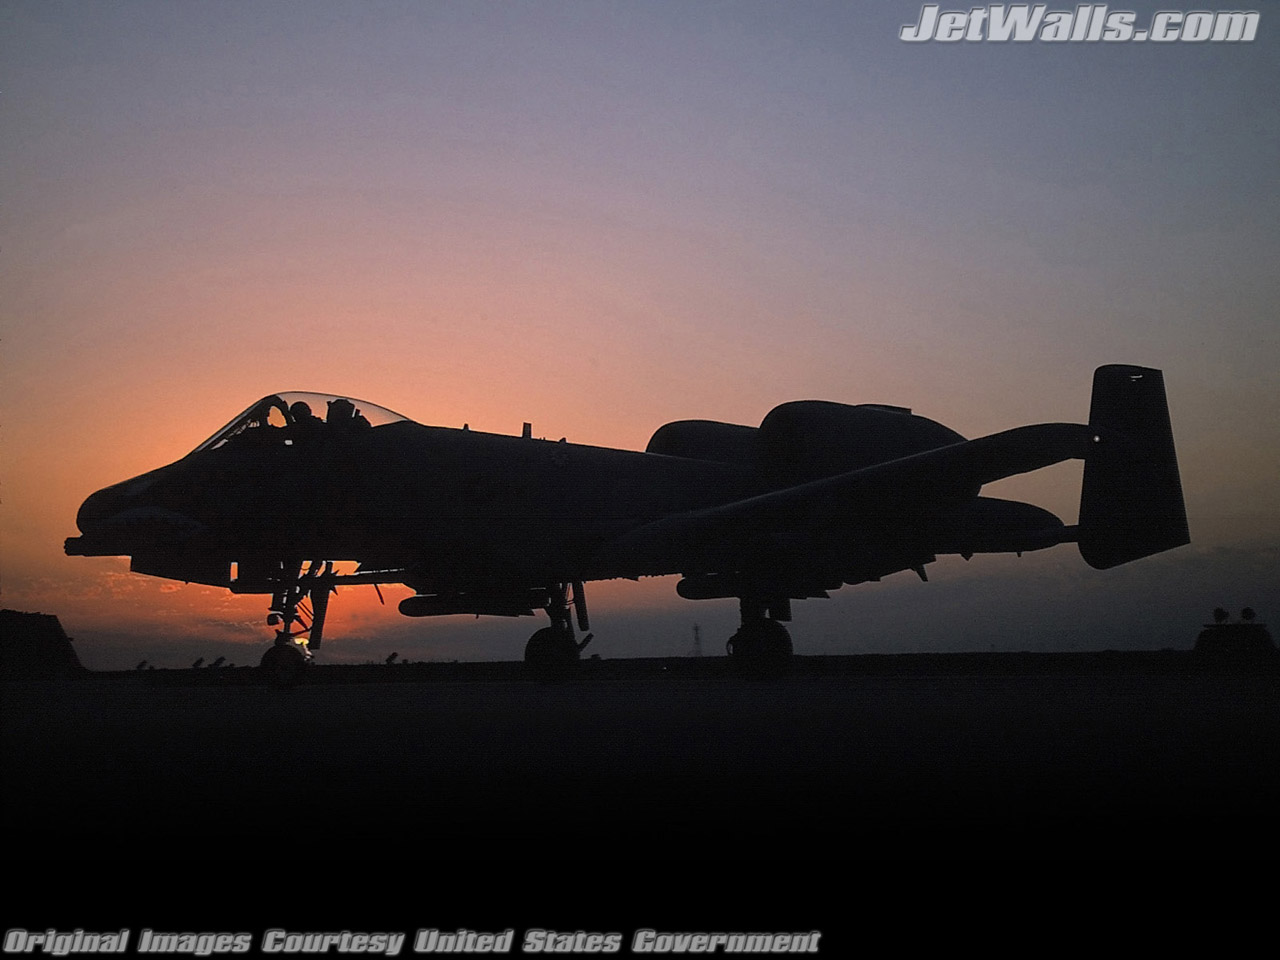 """A-10 Thunderbolt II"" - Wallpaper No. 12 of 101. Right click for saving options."